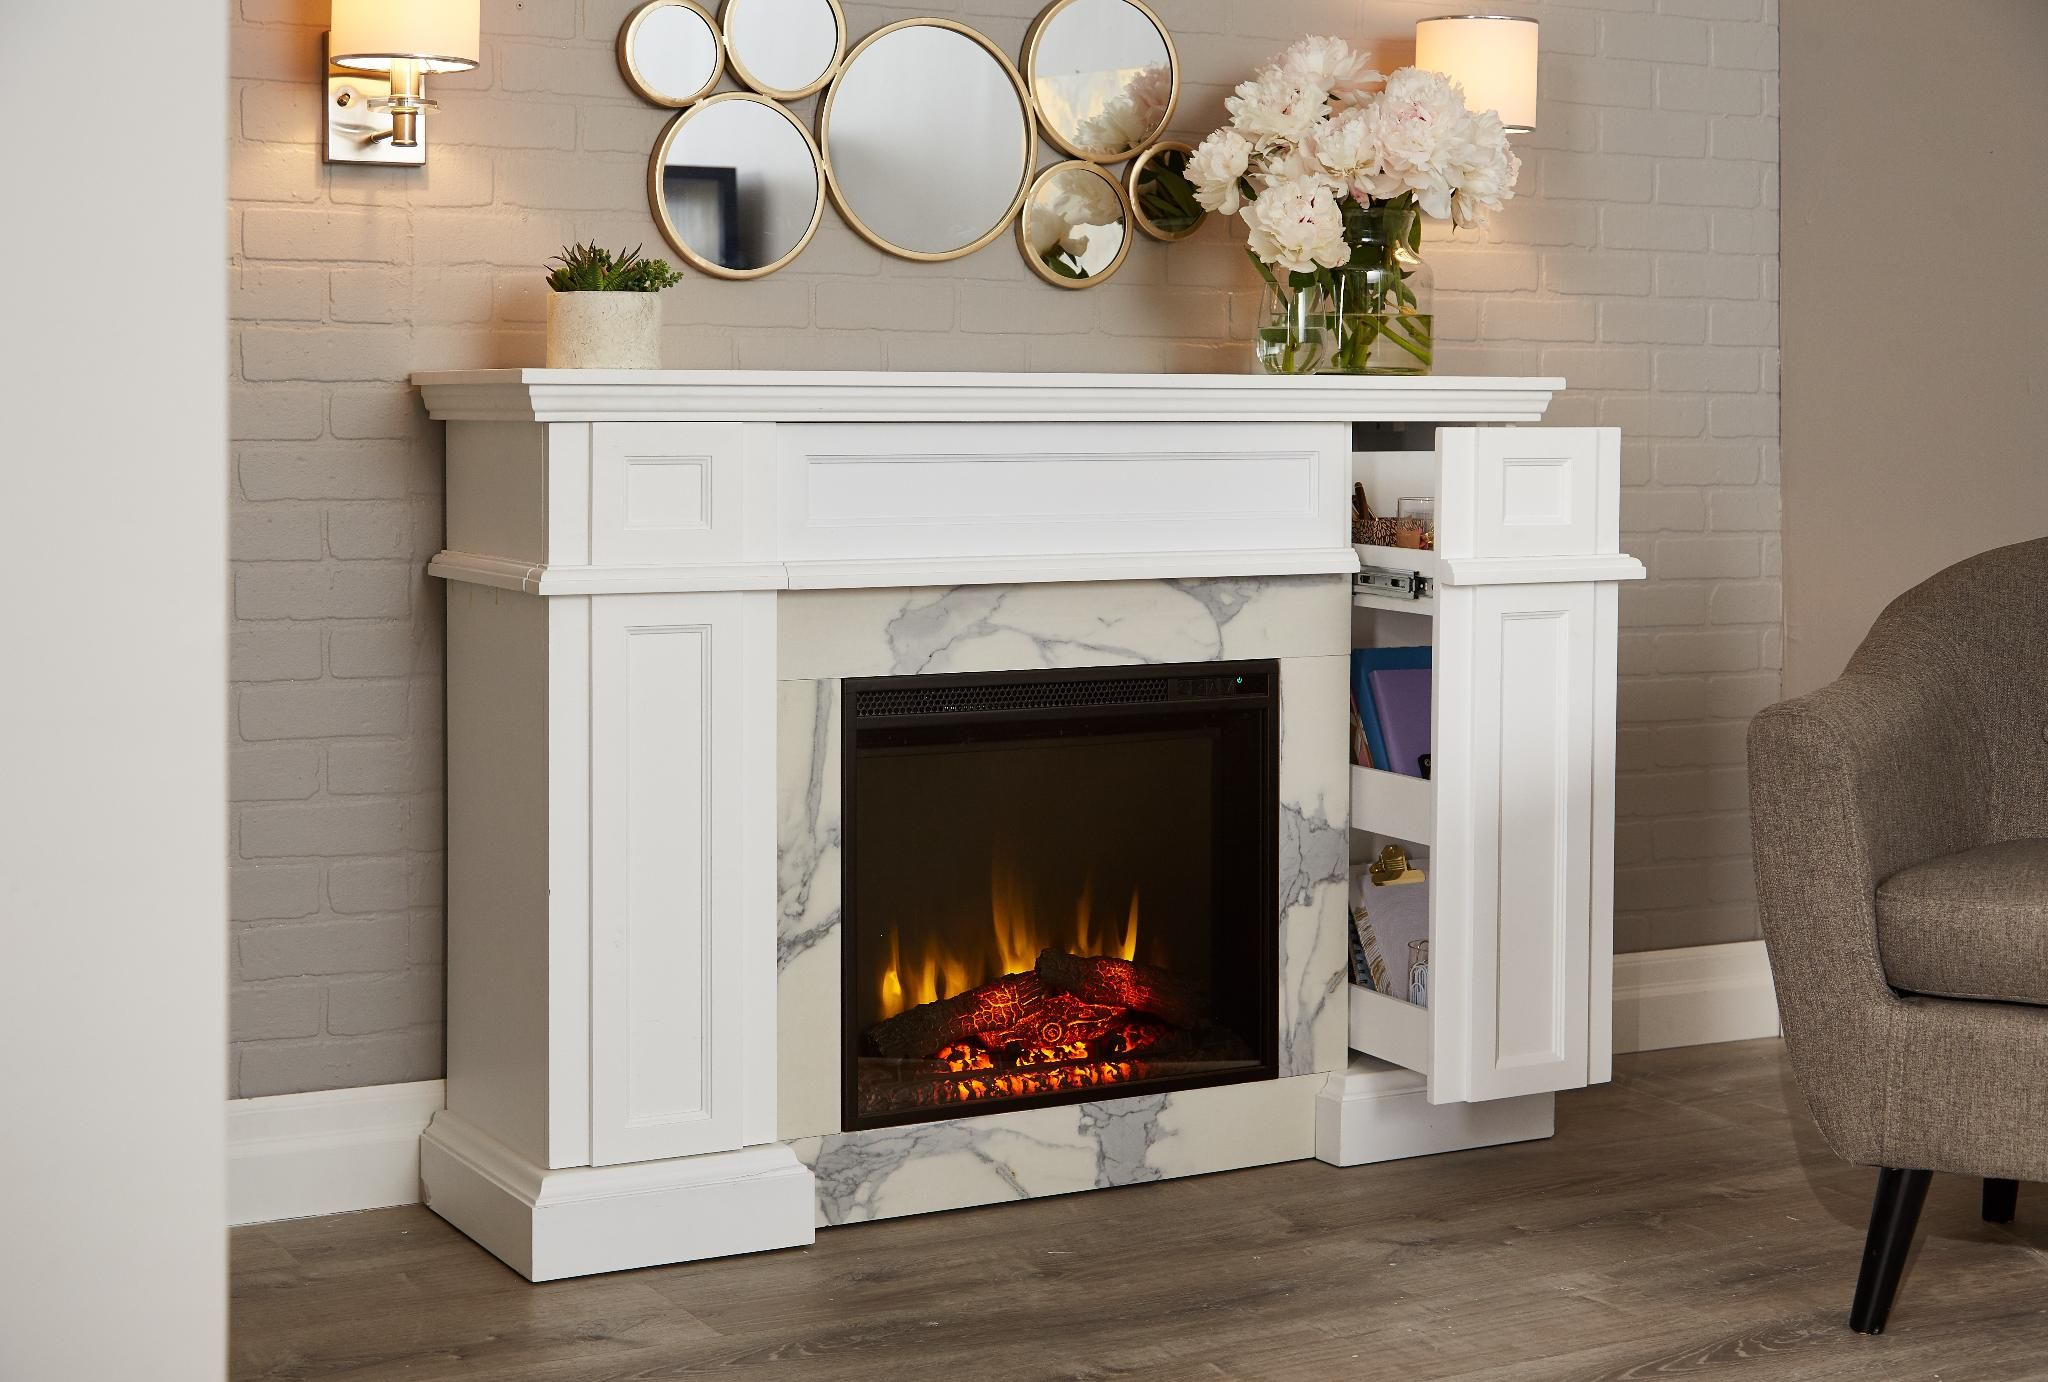 Relax And Get Cozy In A Clutter Freee With The Canvas M Ille Fireplace With Clever Hidden Storage And A Streamlined Look Its The Perfect